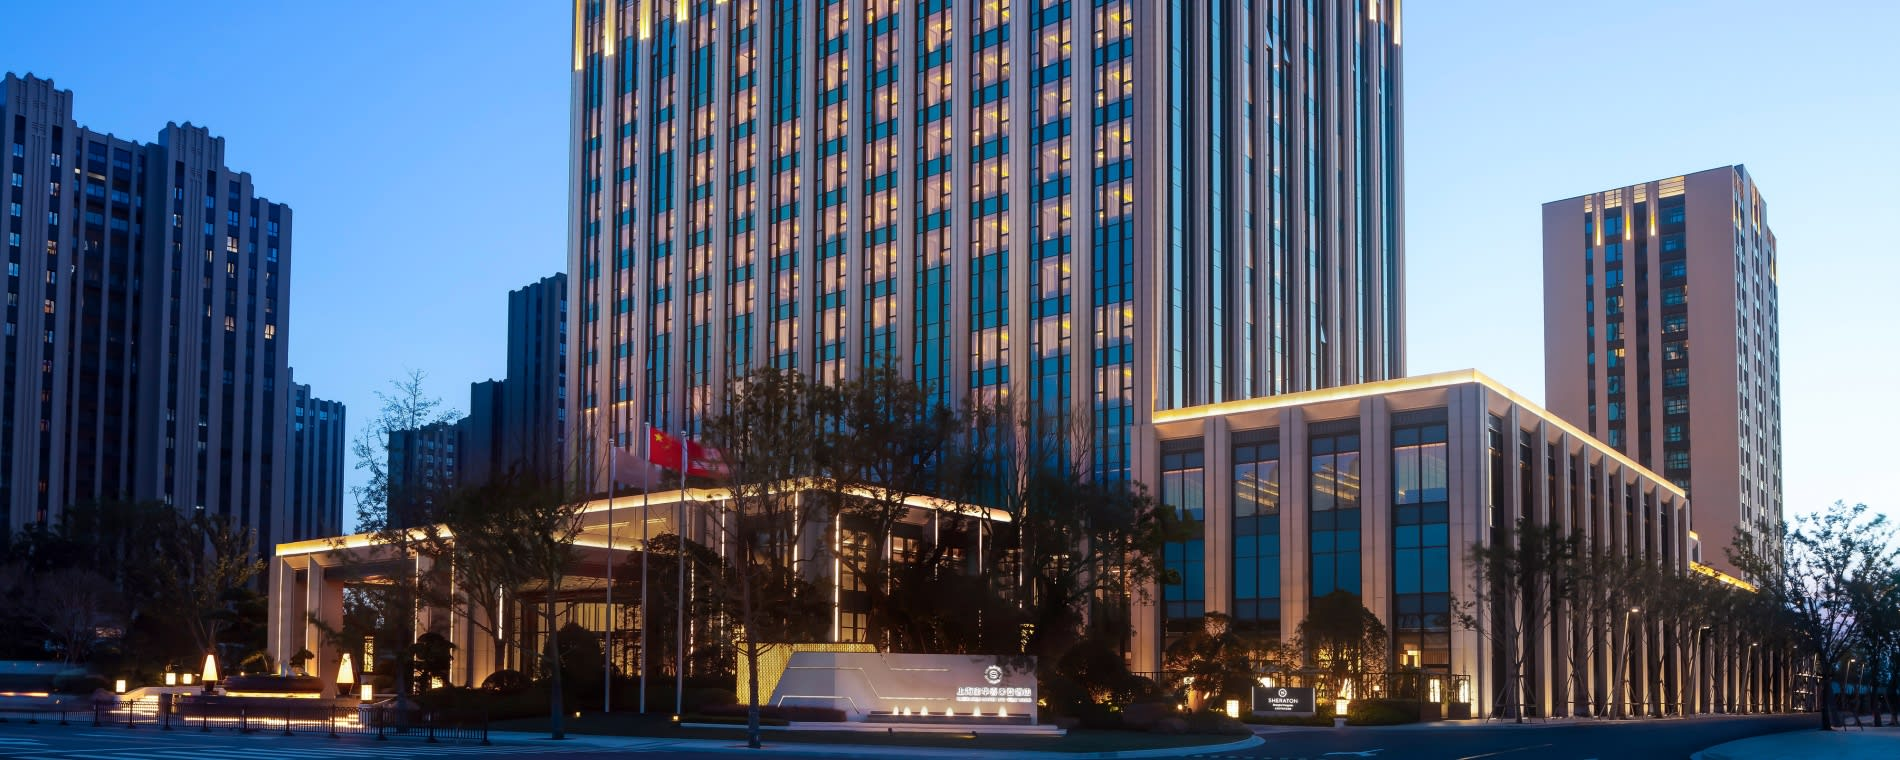 Marriott International continues Asia Pacific growth with nearly 100 properties expected to open in 2021 - 75 Properties Opened Across Asia Pacific in 2020